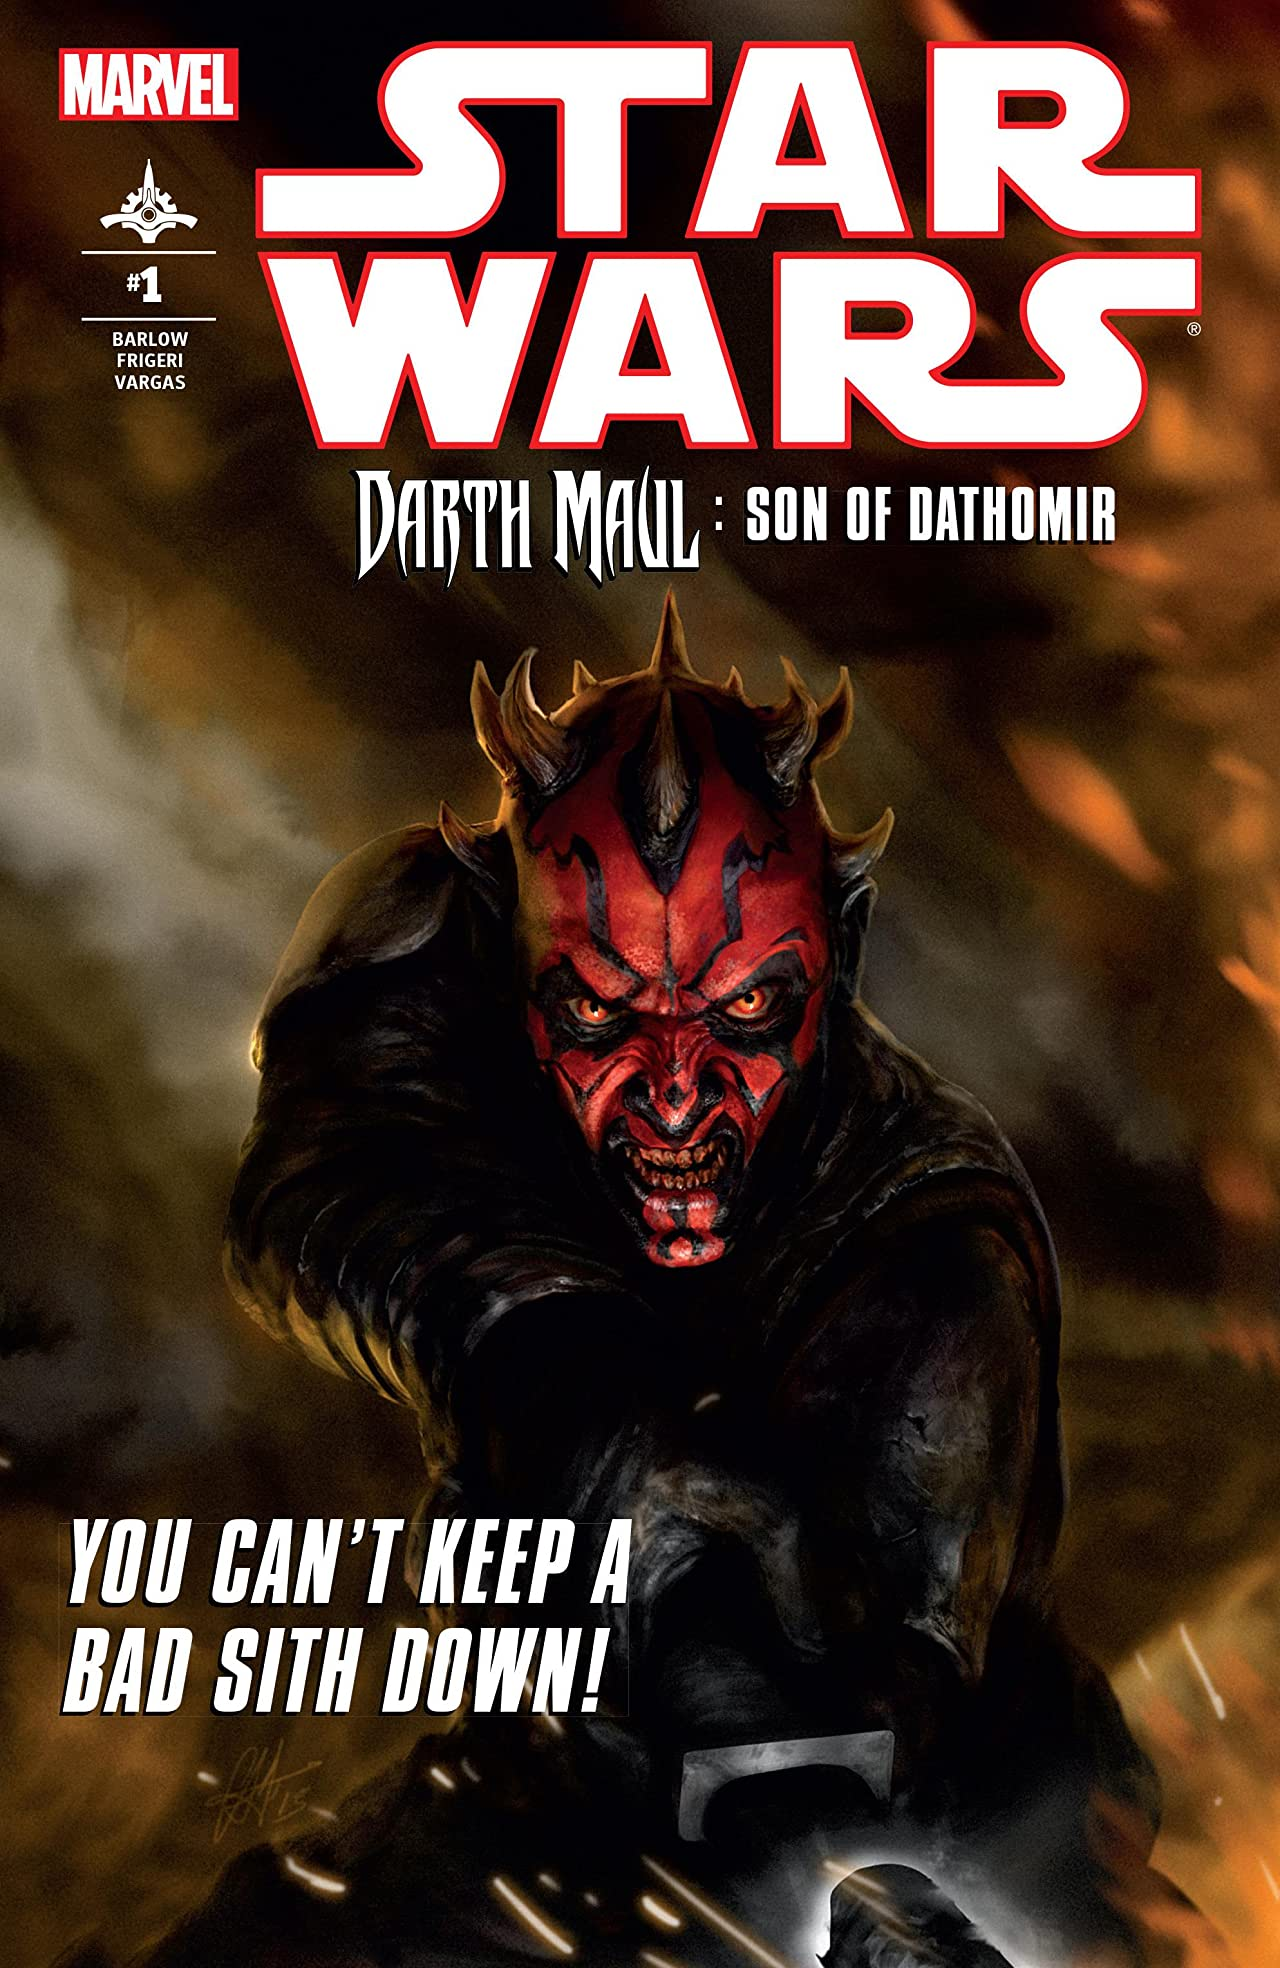 Star Wars: Darth Maul - Son of Dathomir (2014) #1 (of 4)